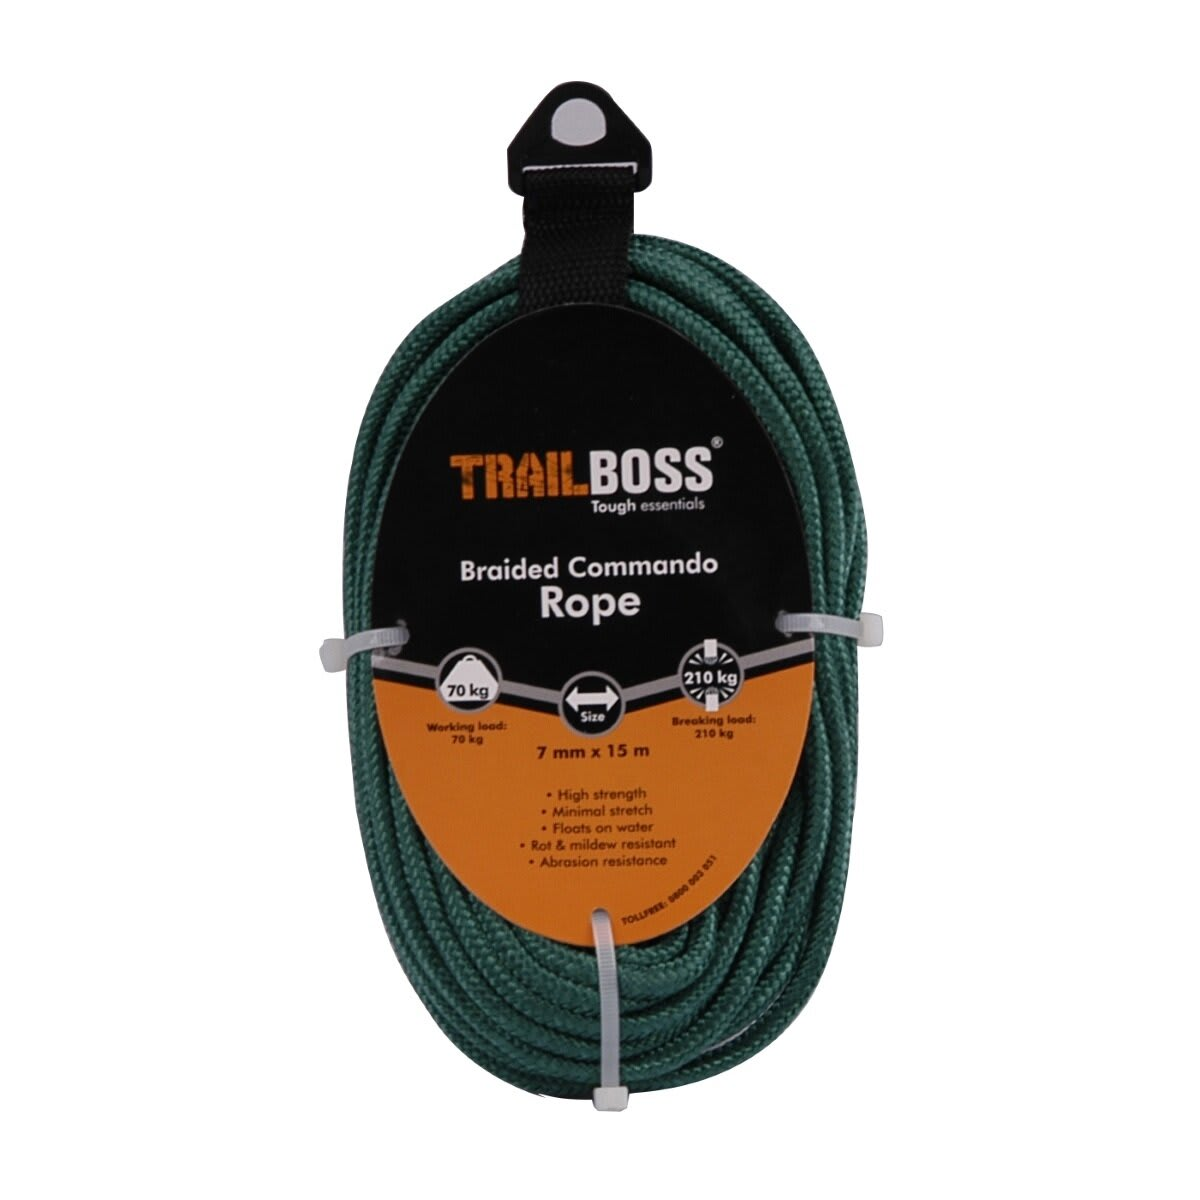 TrailBoss 7mm x 15m Braided Commando Rope